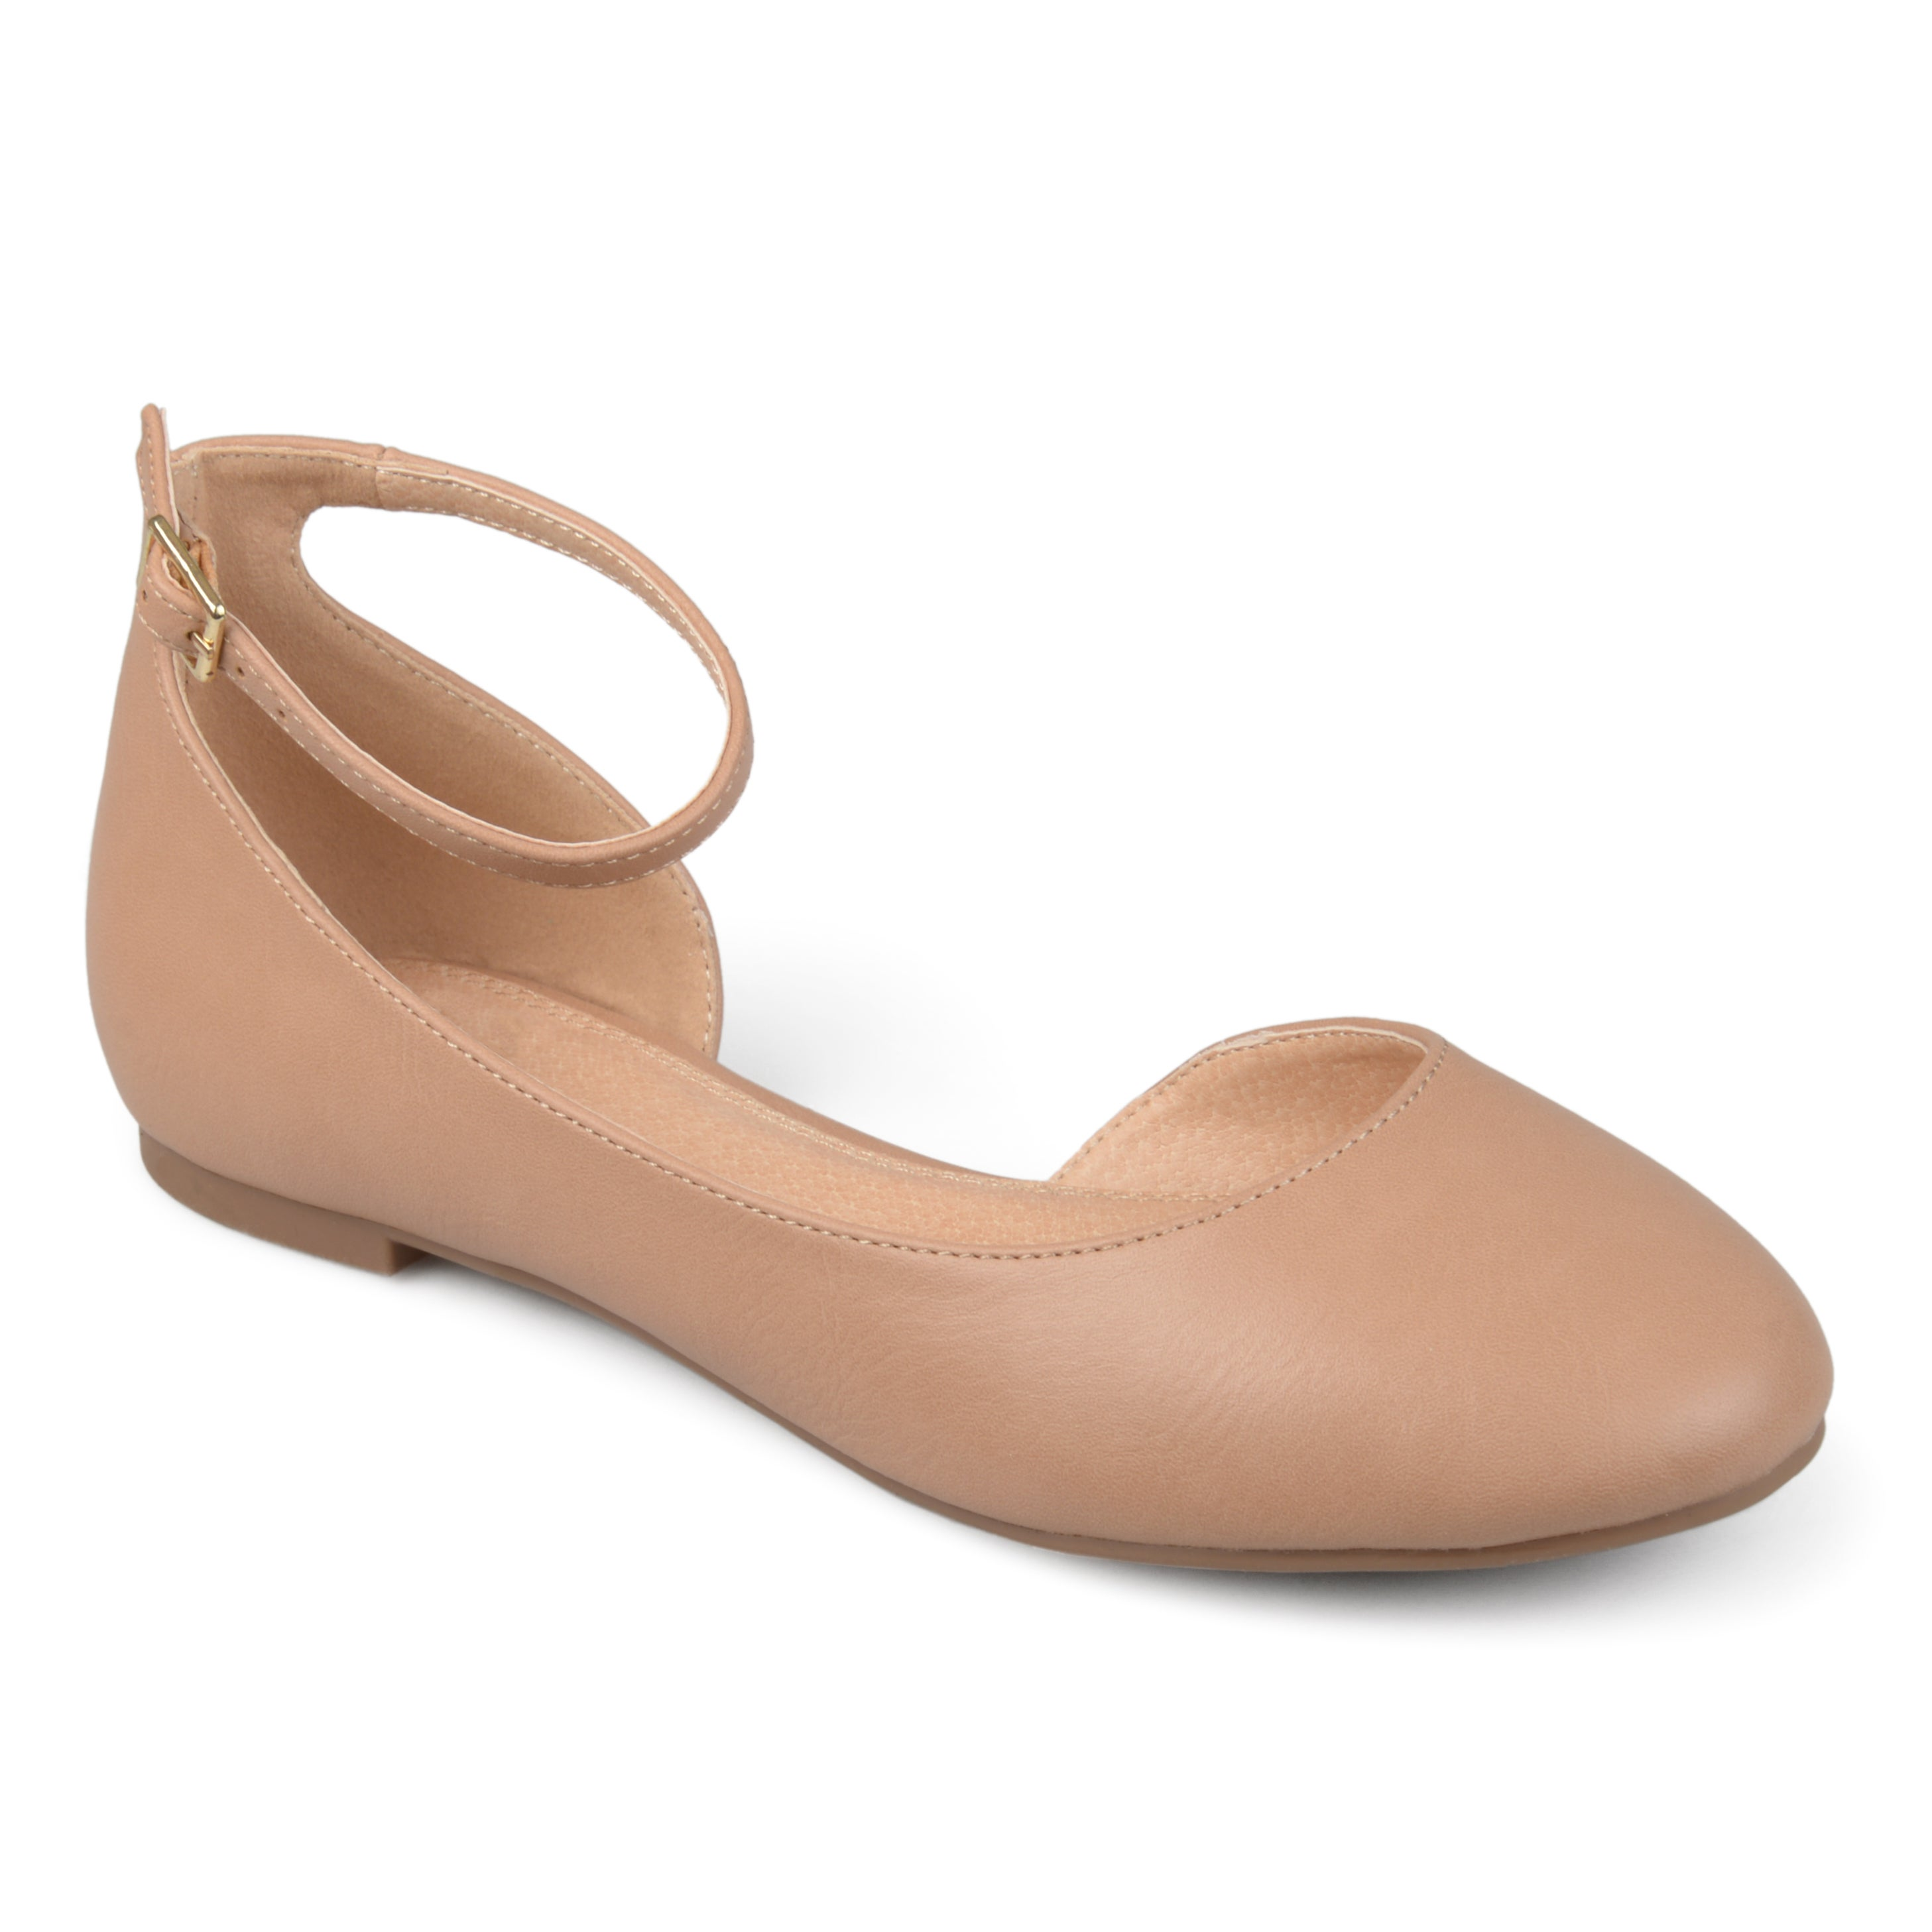 Journee Collection Women's 'Astley' Wide Width D'orsay Ankle Strap Round  Toe Flats